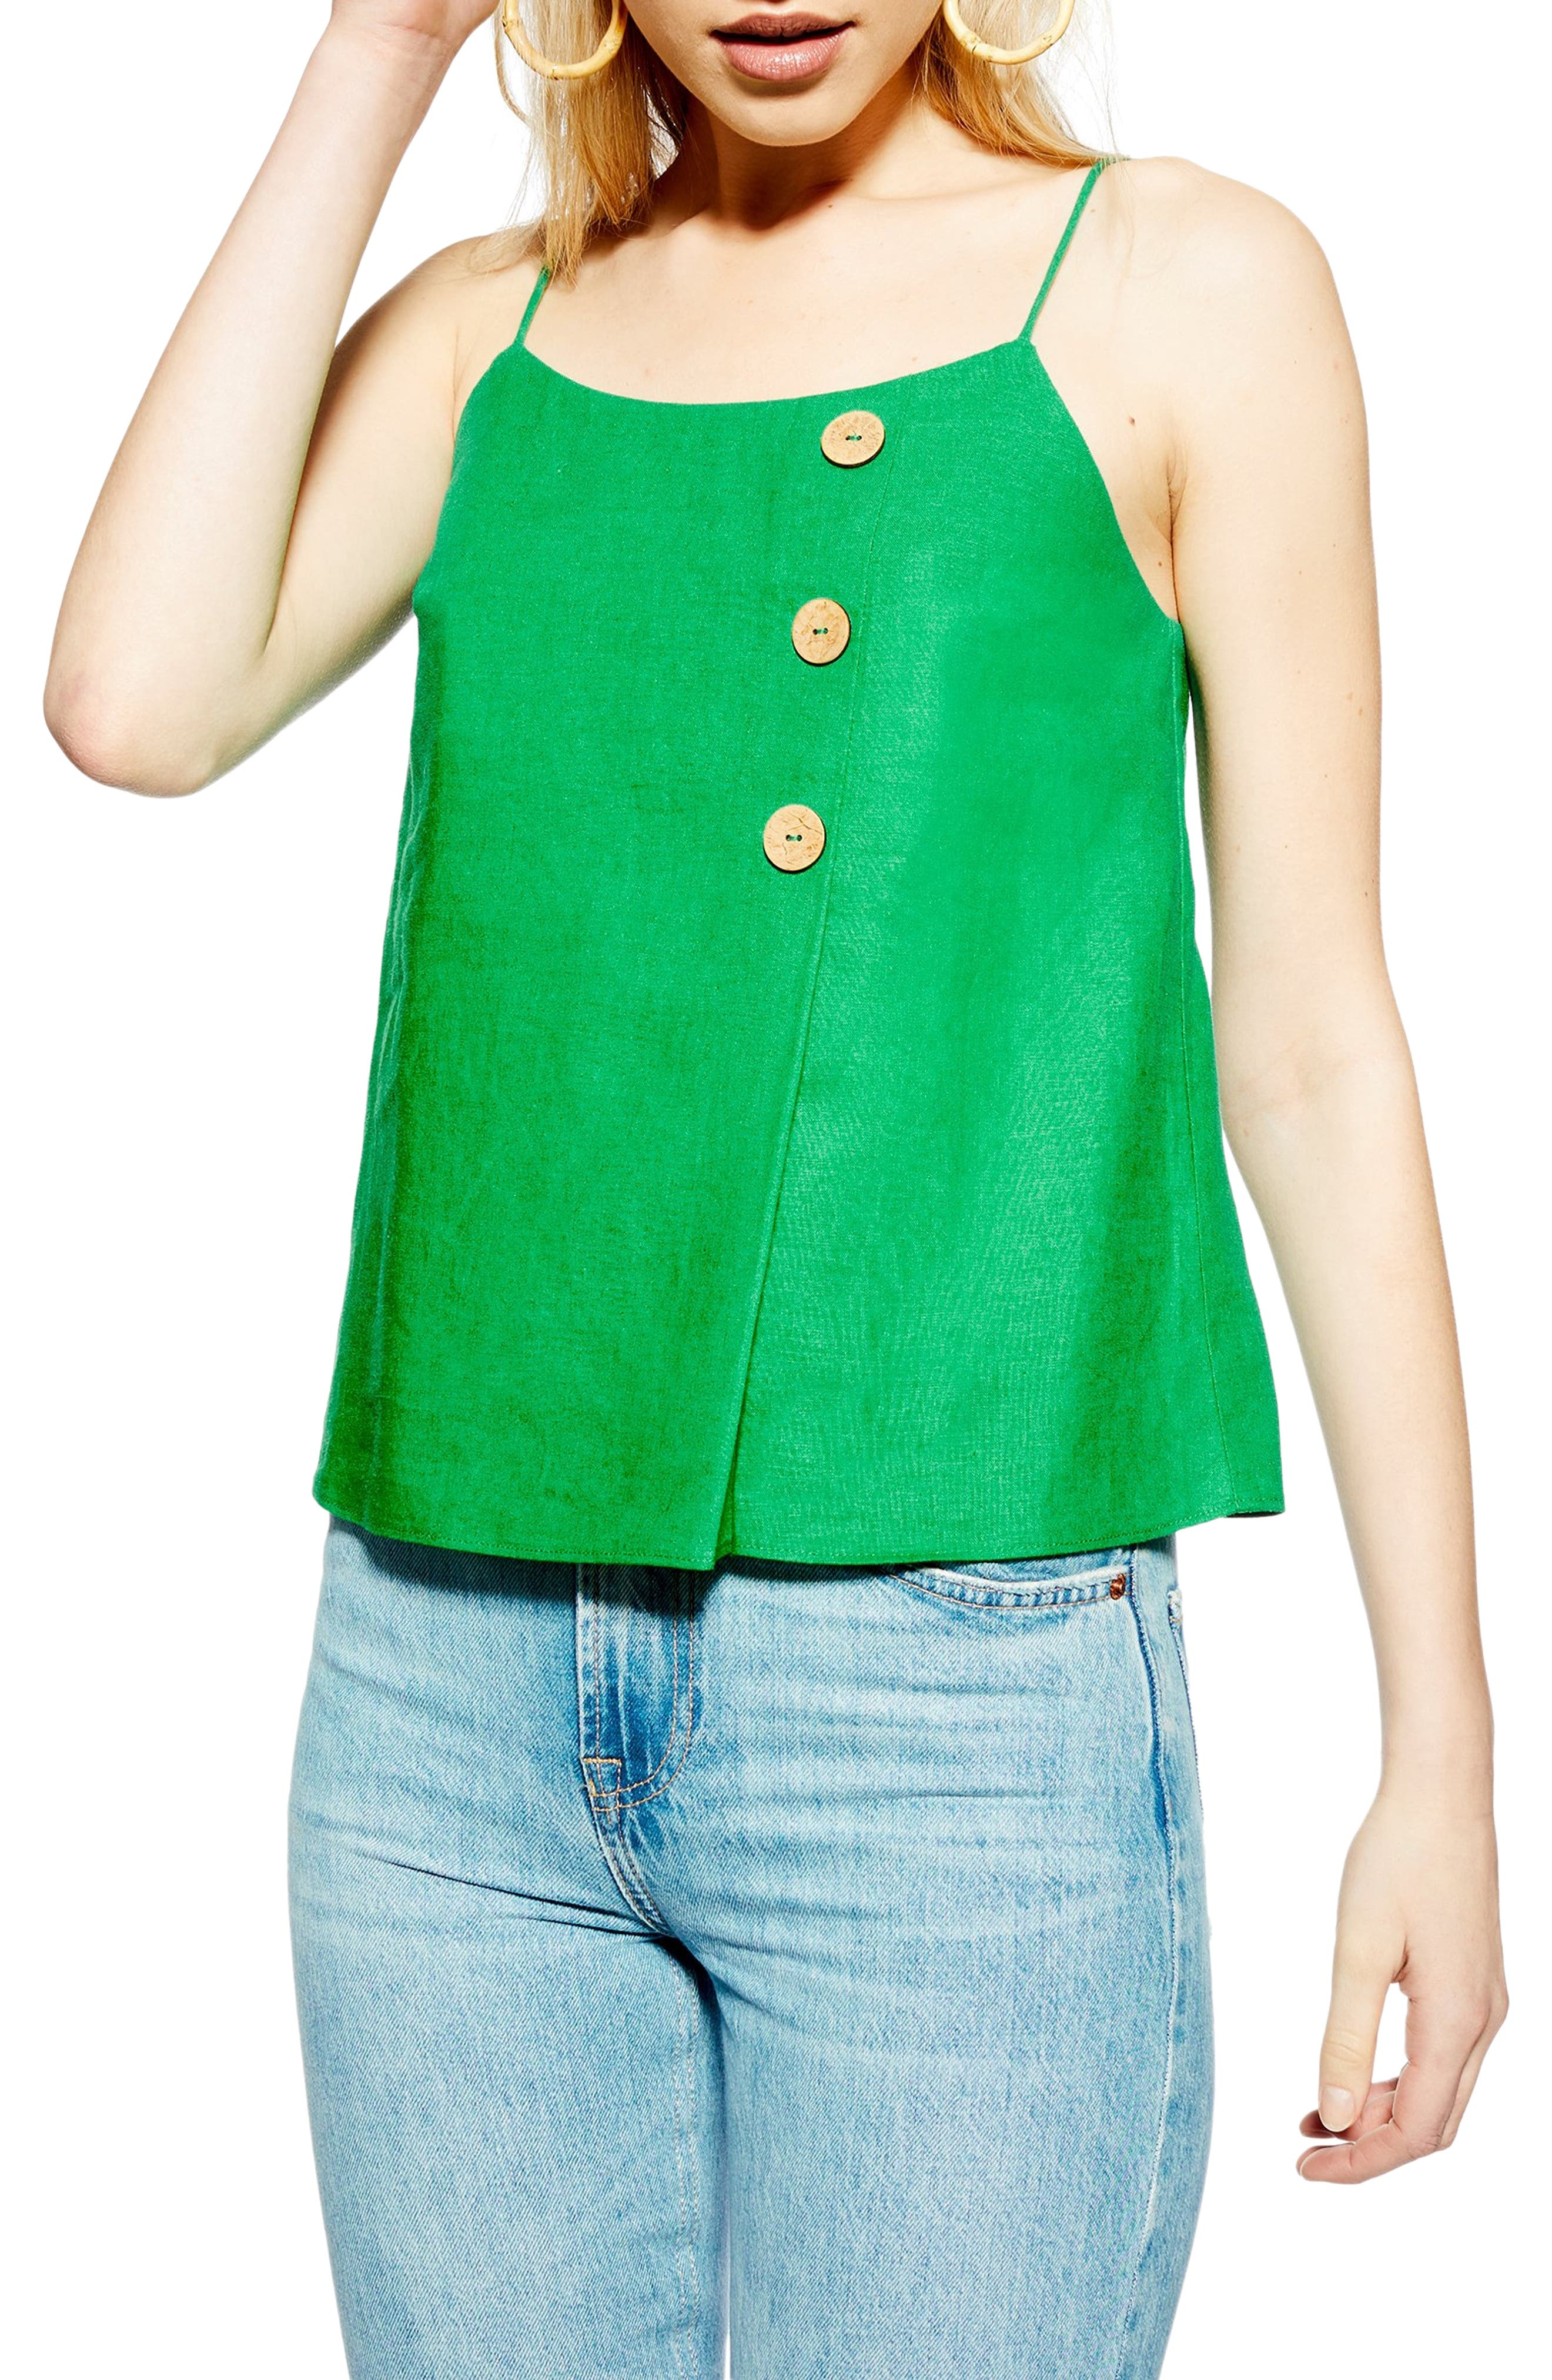 Topshop Button Wrap Camisole Top, US (fits like 14) - Green